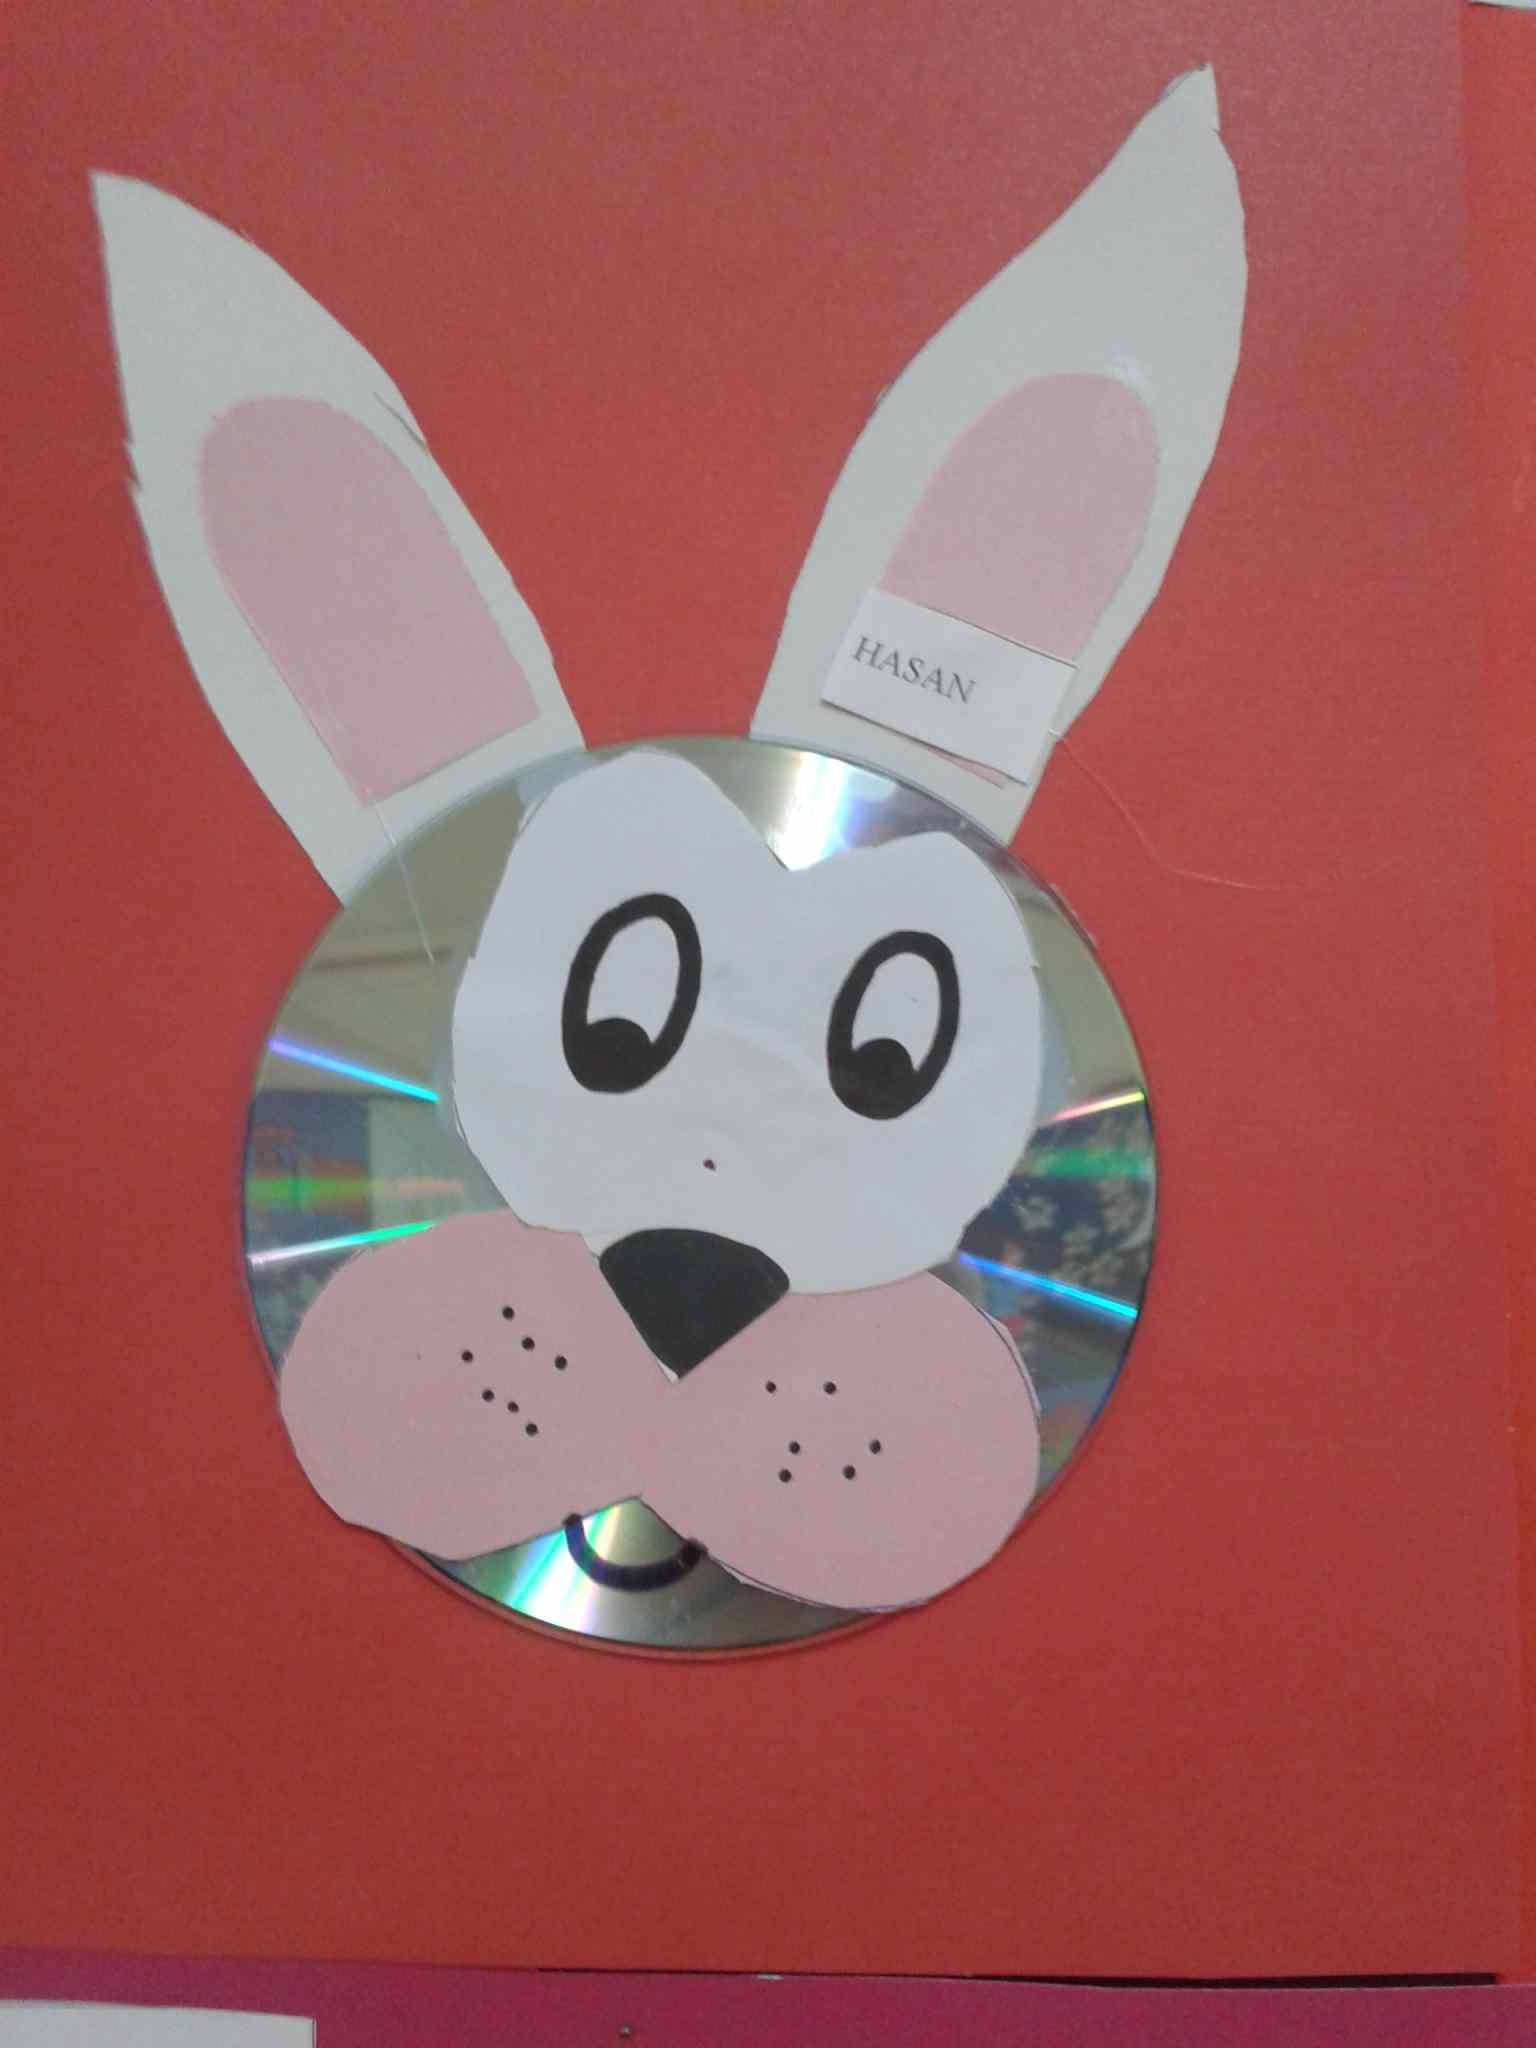 Cd Bunny Craft Idea For Kids 1 Preschoolplanet